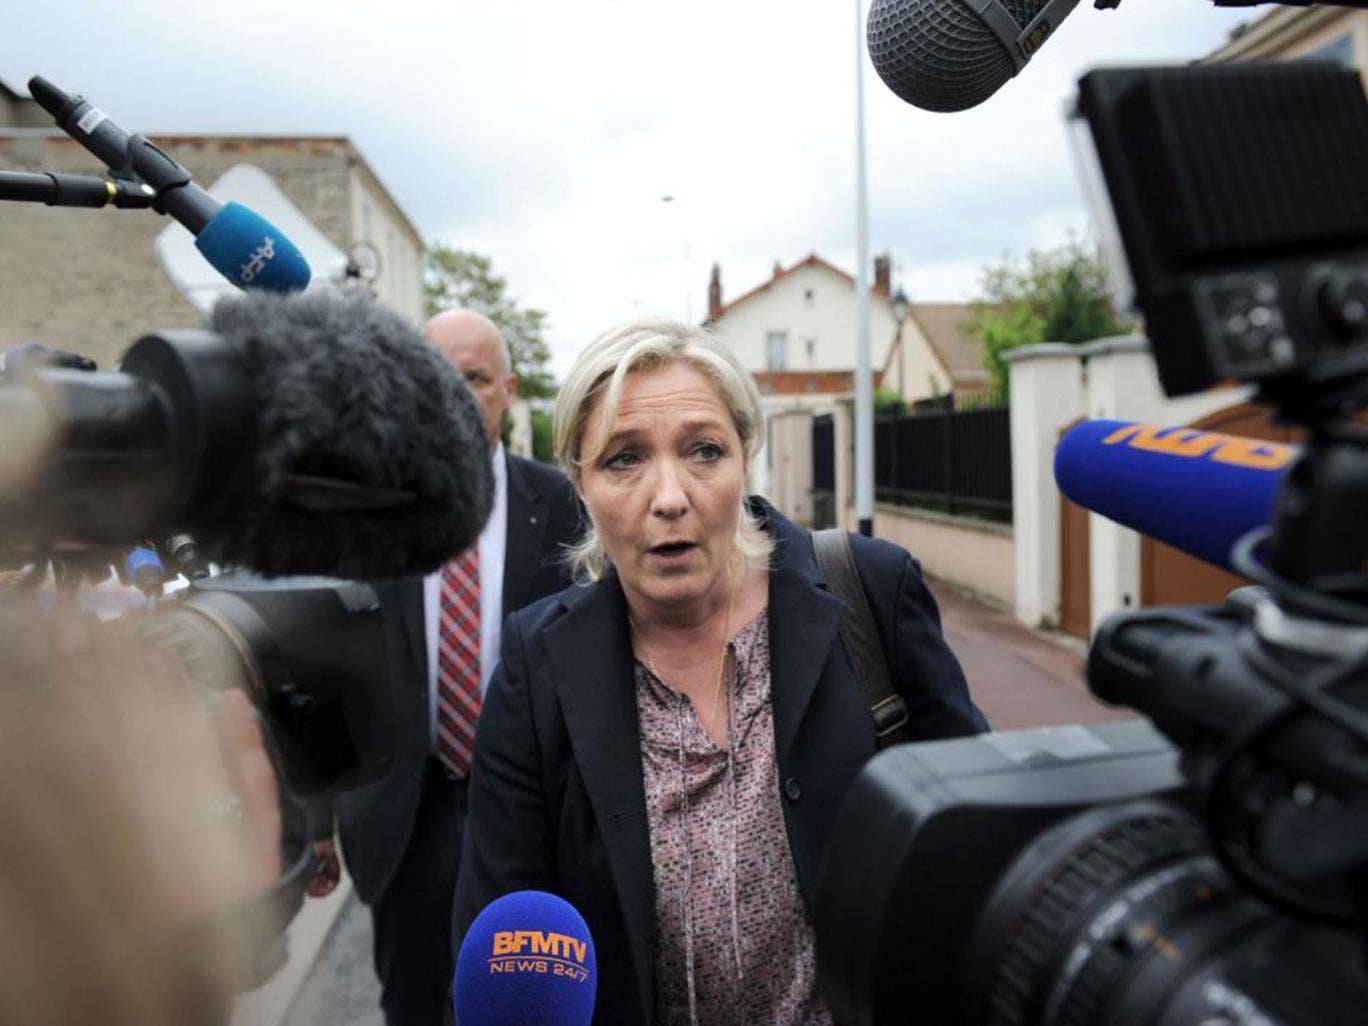 The FN president, Marine le Pen, arrives for a meeting of party leader in Nanterre